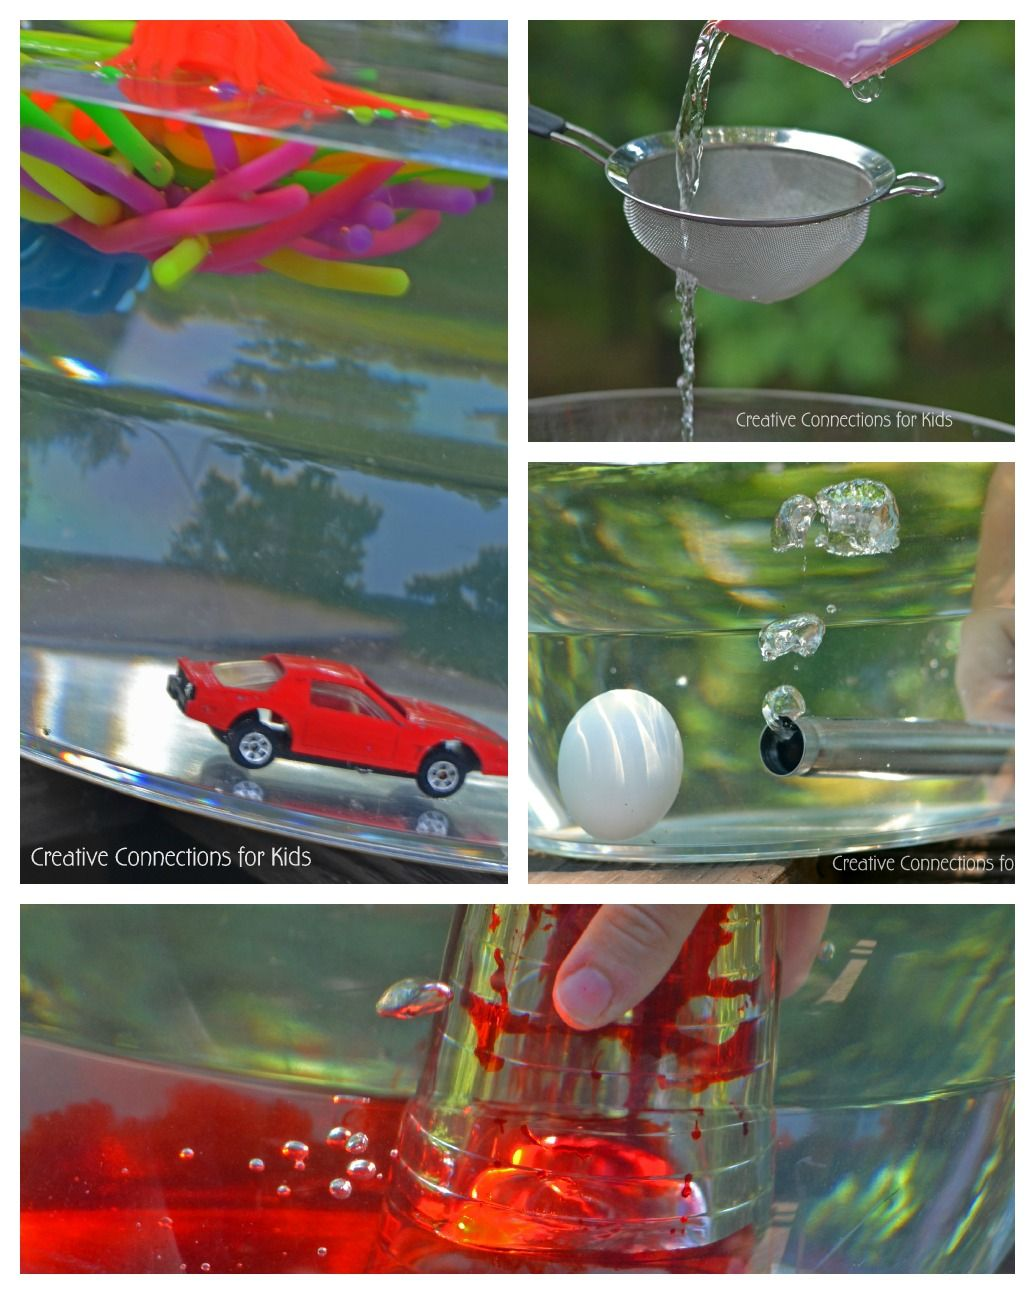 Numerous water science/play ideas - love!